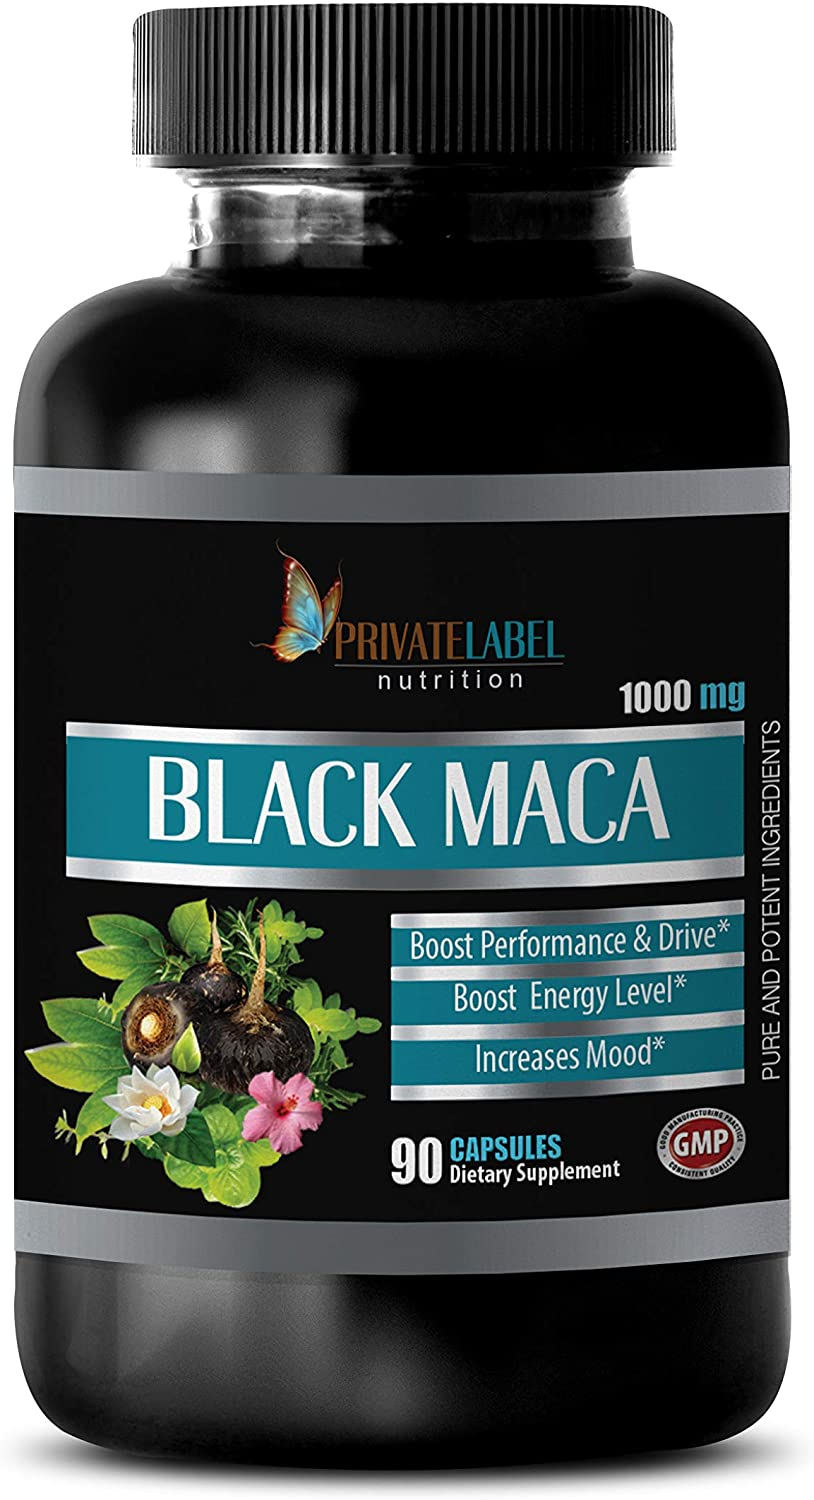 Male Energy Supplements - Black MACA 1000MG - Pure and Potent Ingredients - Black maca gelatinized Capsules - 1 Bottle 90 Vegetable Capsules